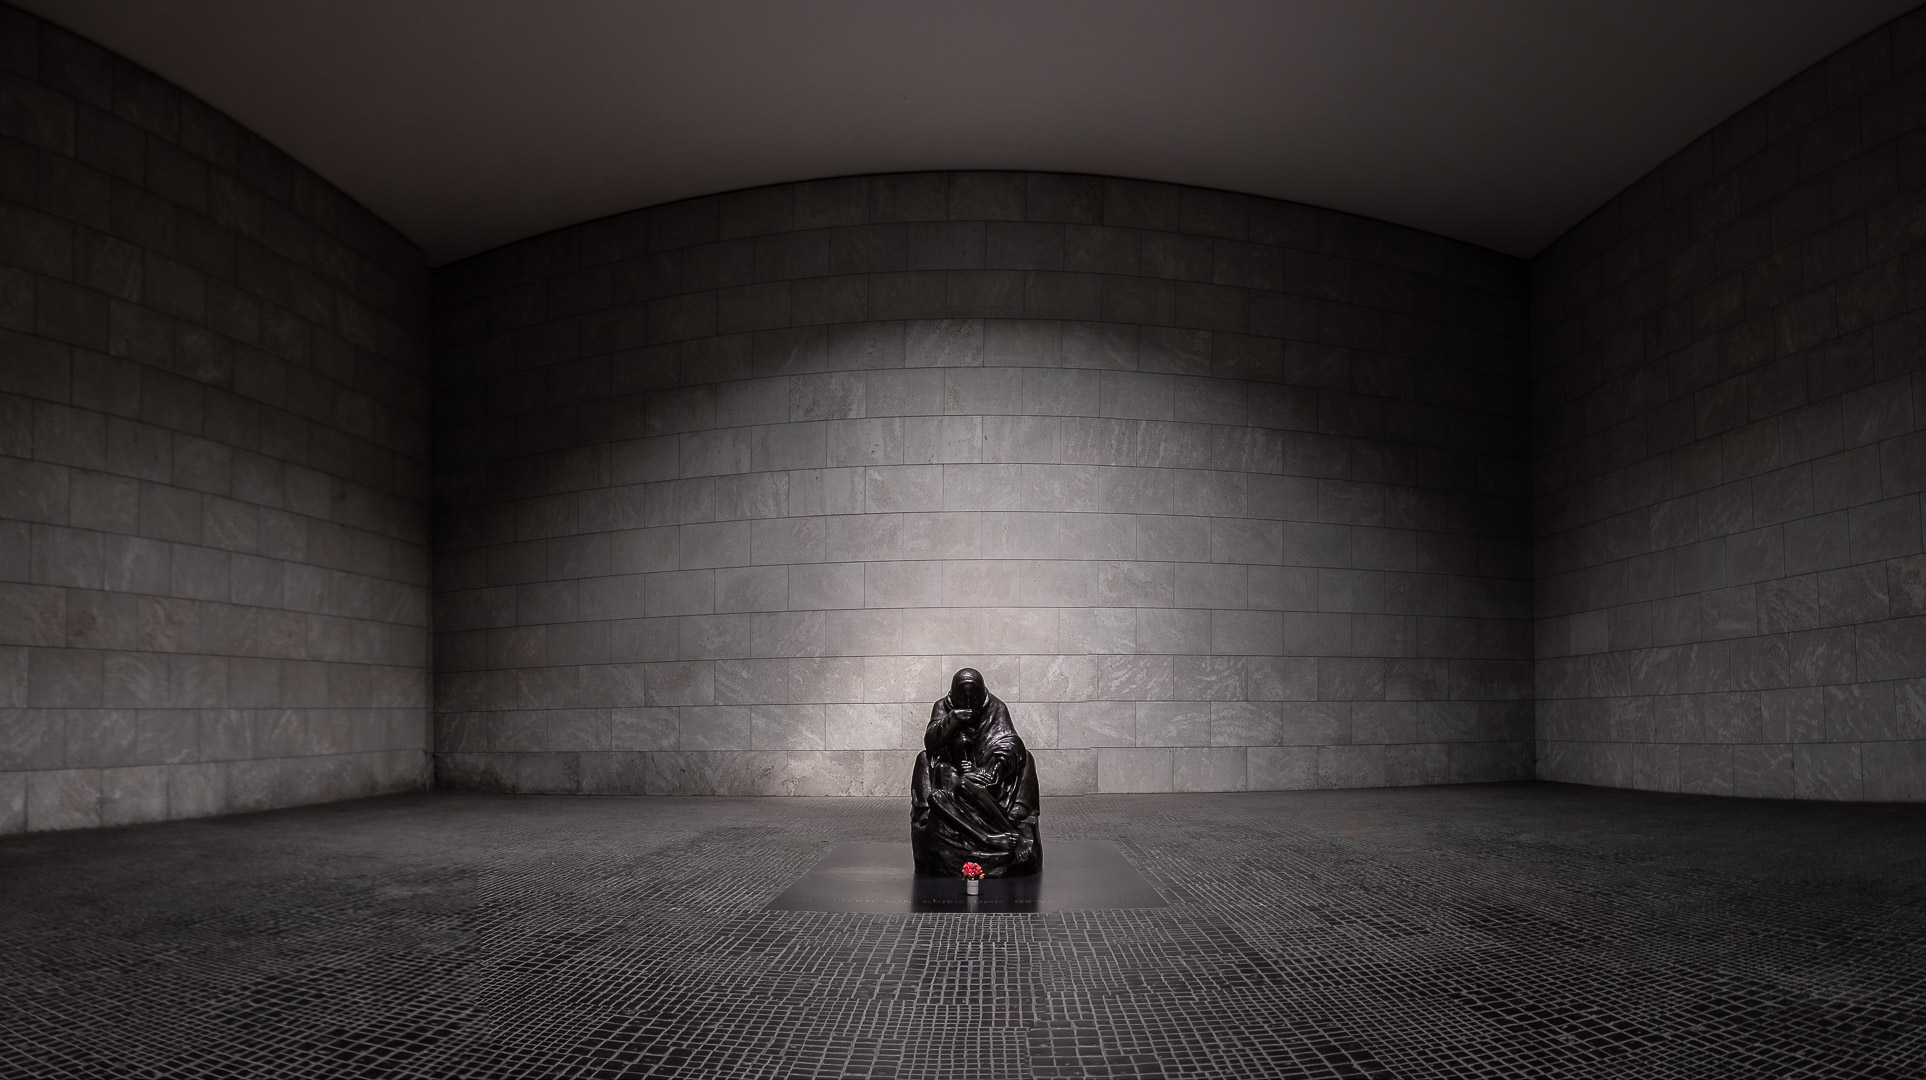 Berlin Neue Wache / New Guardhouse